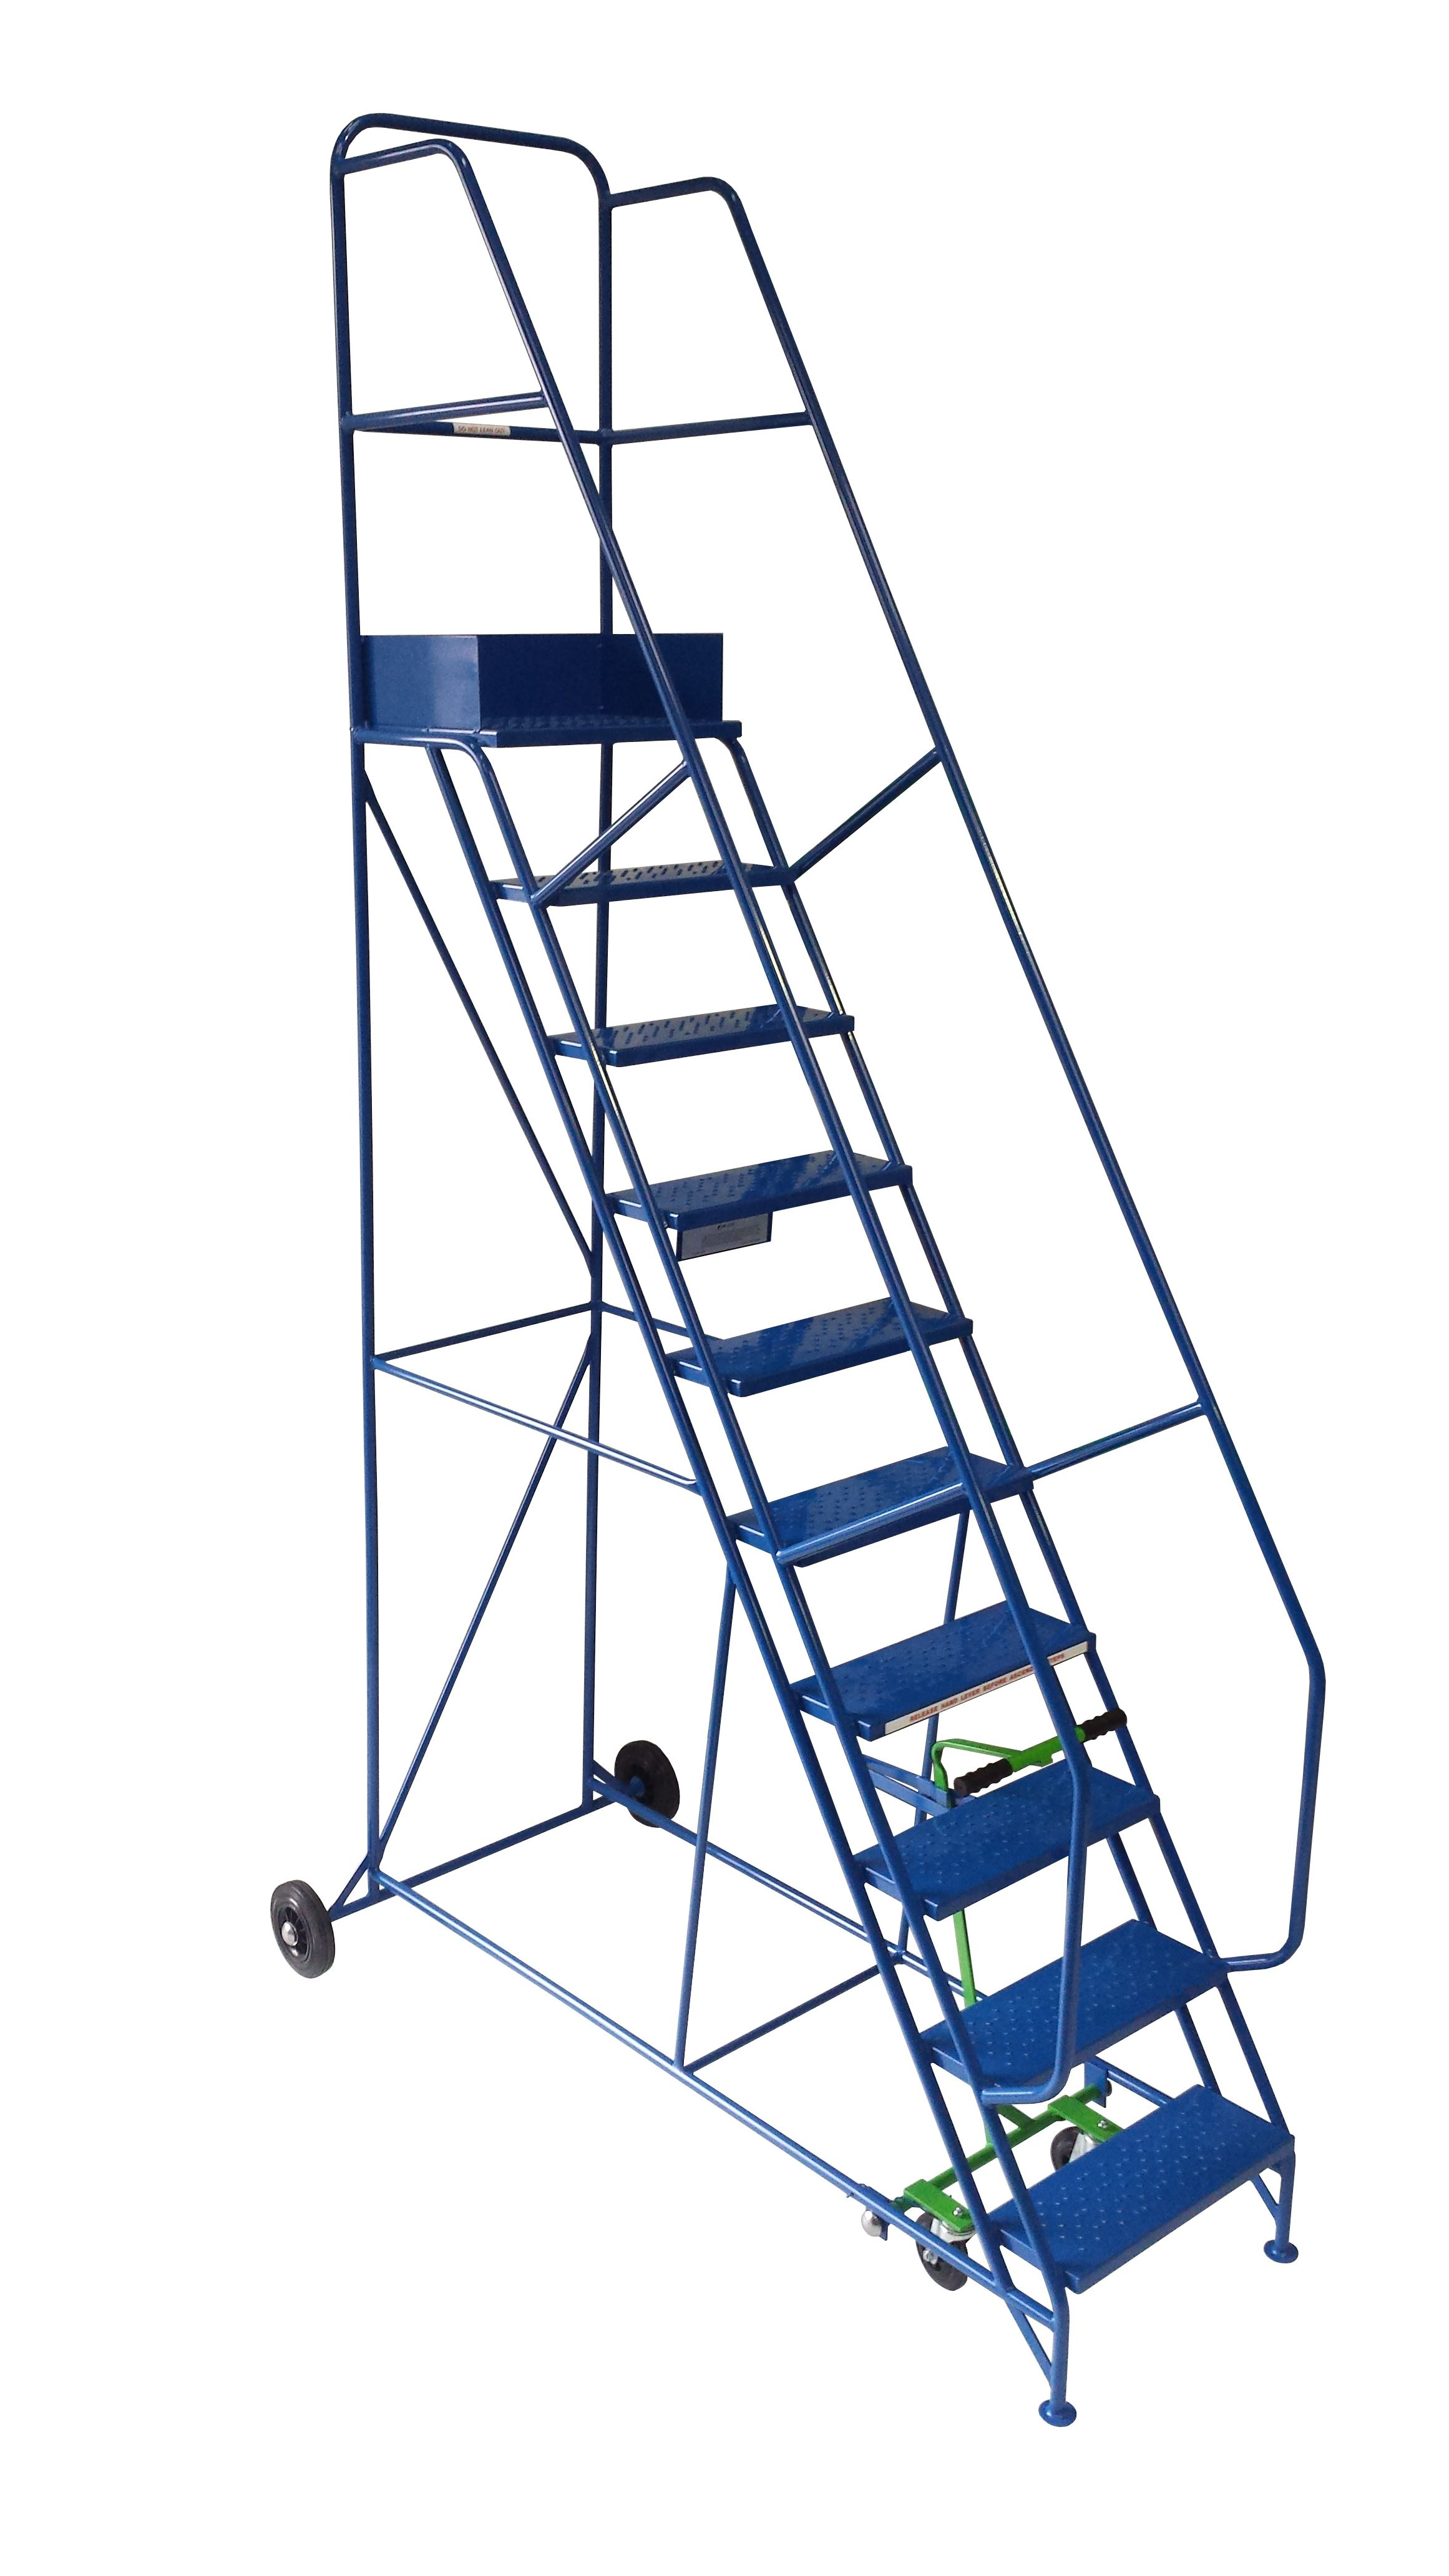 12 Step Warehouse Steps In 2020 Ladder Stairs Stairs Covering